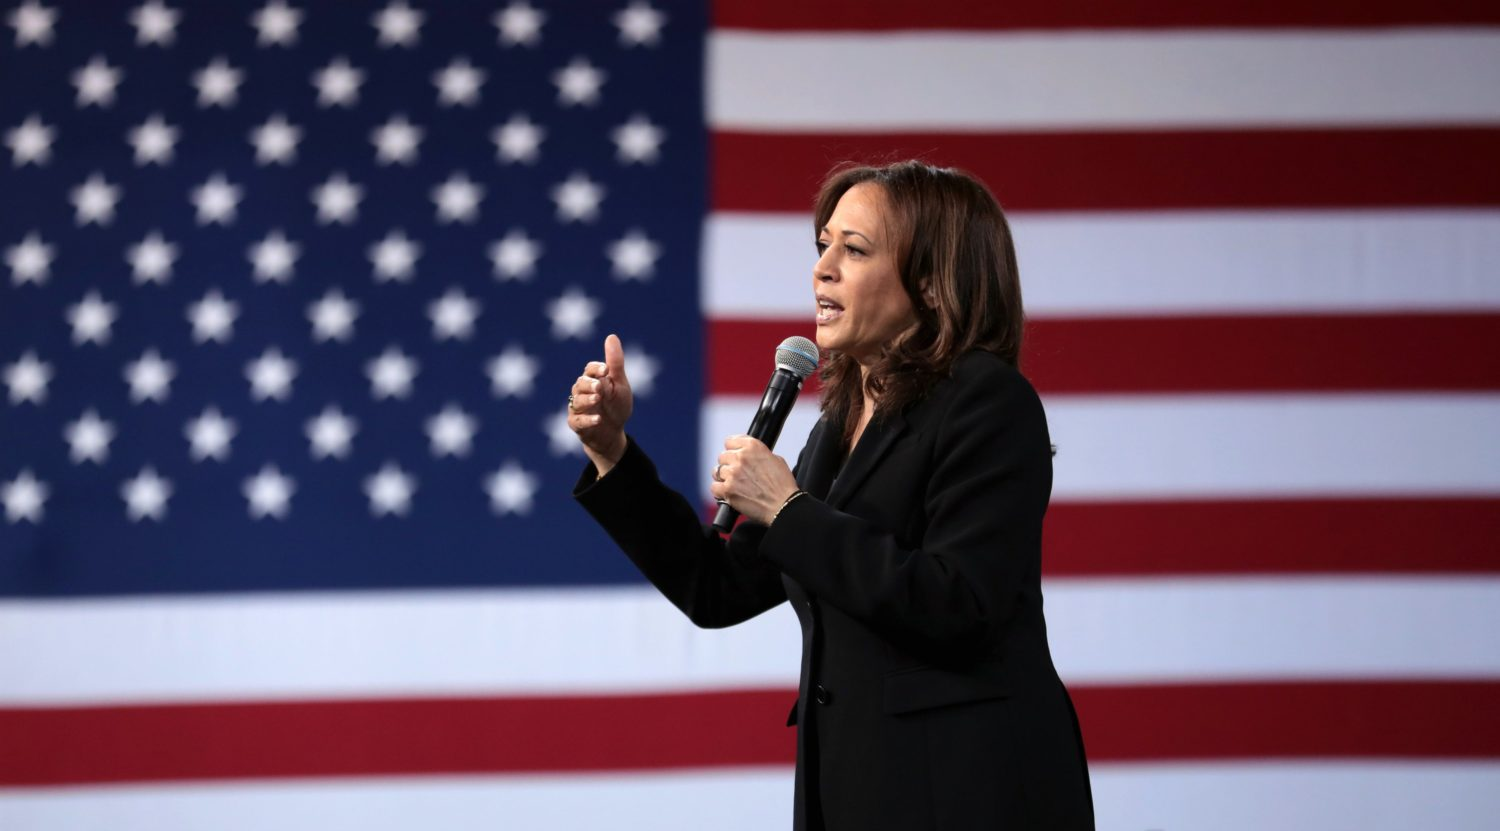 What Kind Of Gun Laws Will Joe Biden Kamala Harris 2020 Champion